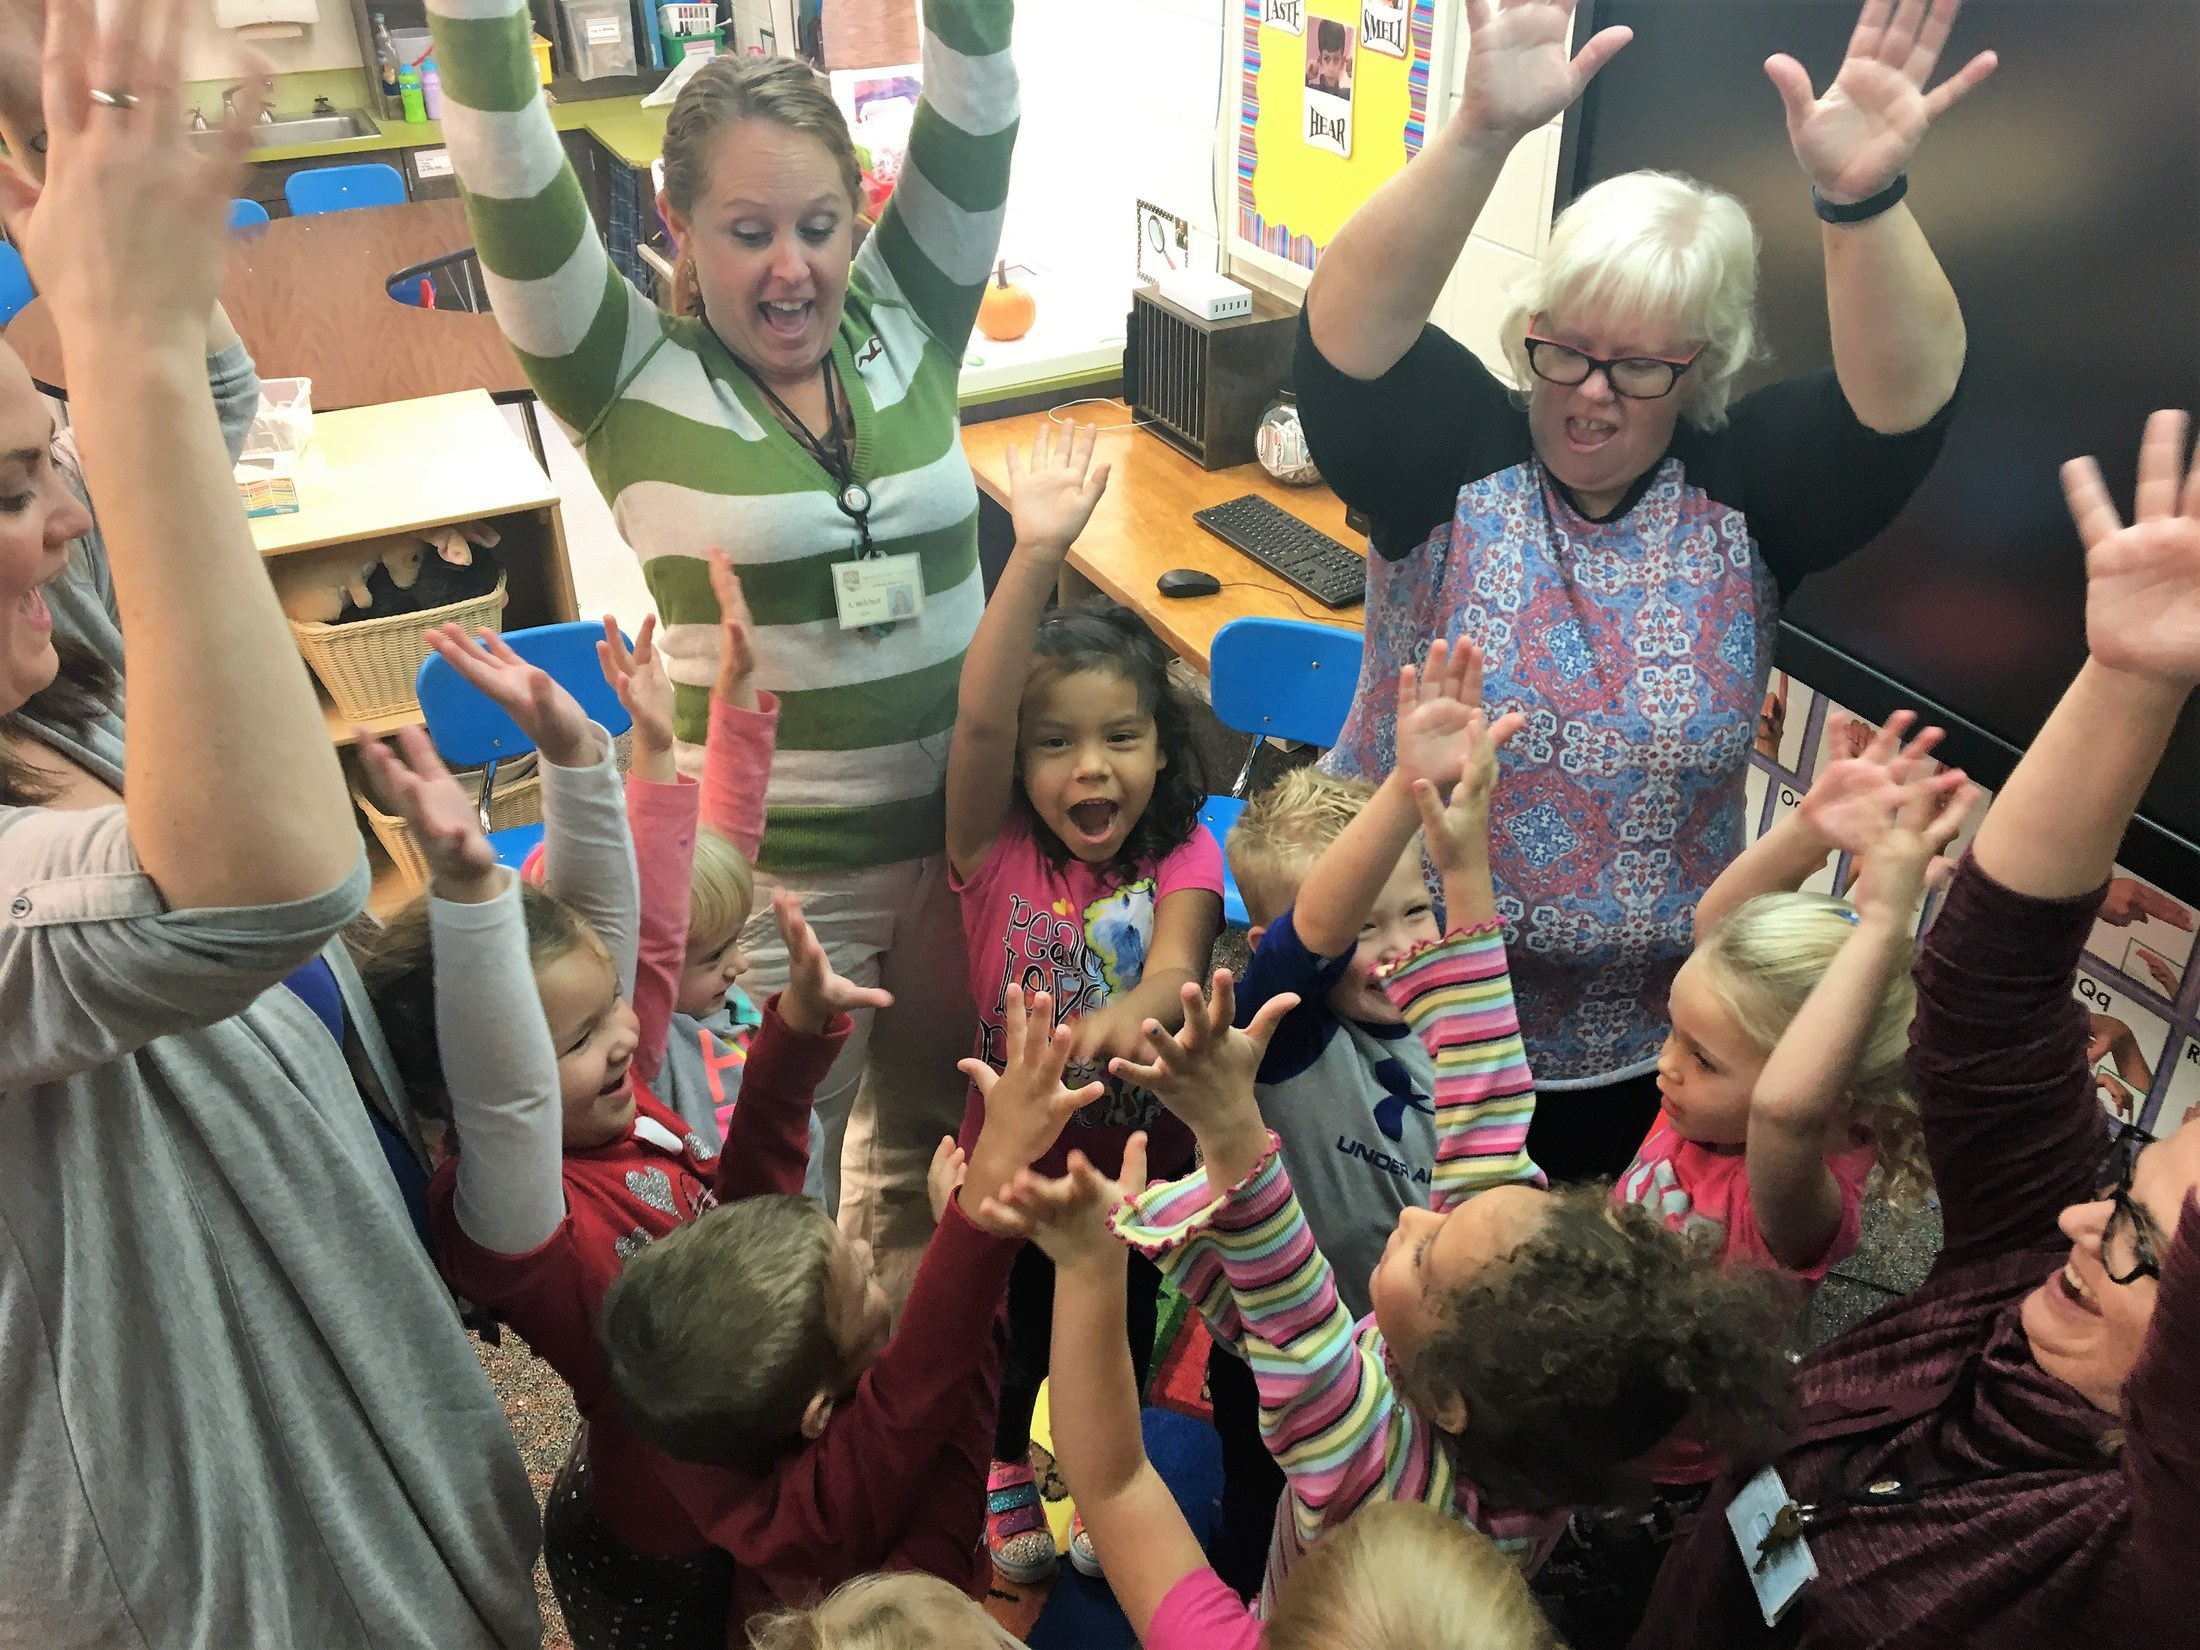 A group of students surrounding each other with their hands in the air.